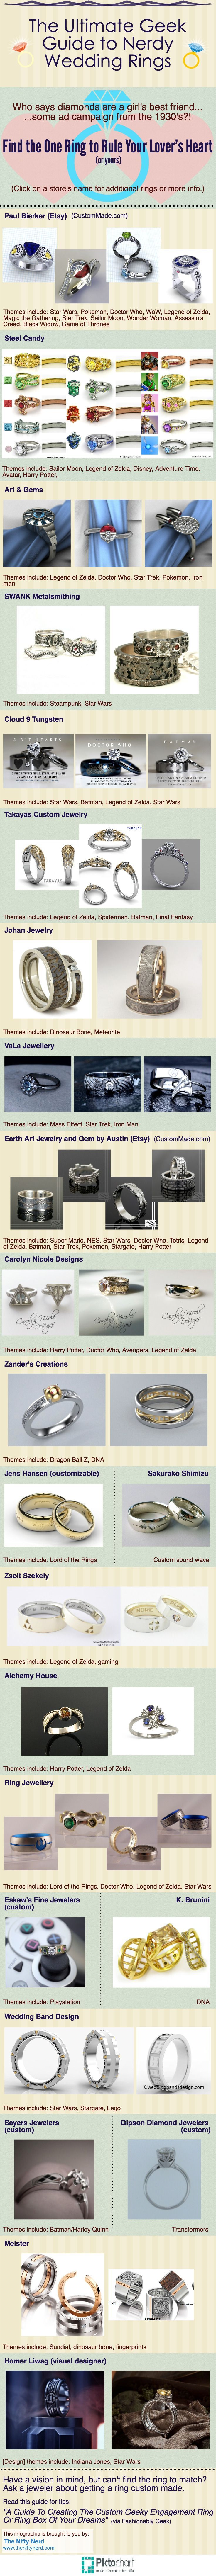 Geek Wedding Ring Guide Nerdy engagement rings you can actually buy; Star Wars, Doctor Who, Lord of the Rings, science, Legend of Zelda, Pokemon, WoW, video gaming, Harry Potter, Dragon Ball, Star Trek, steampunk, Batman, Spiderman, Iron man, dinosaur bone, Mario, Stargate, and more!